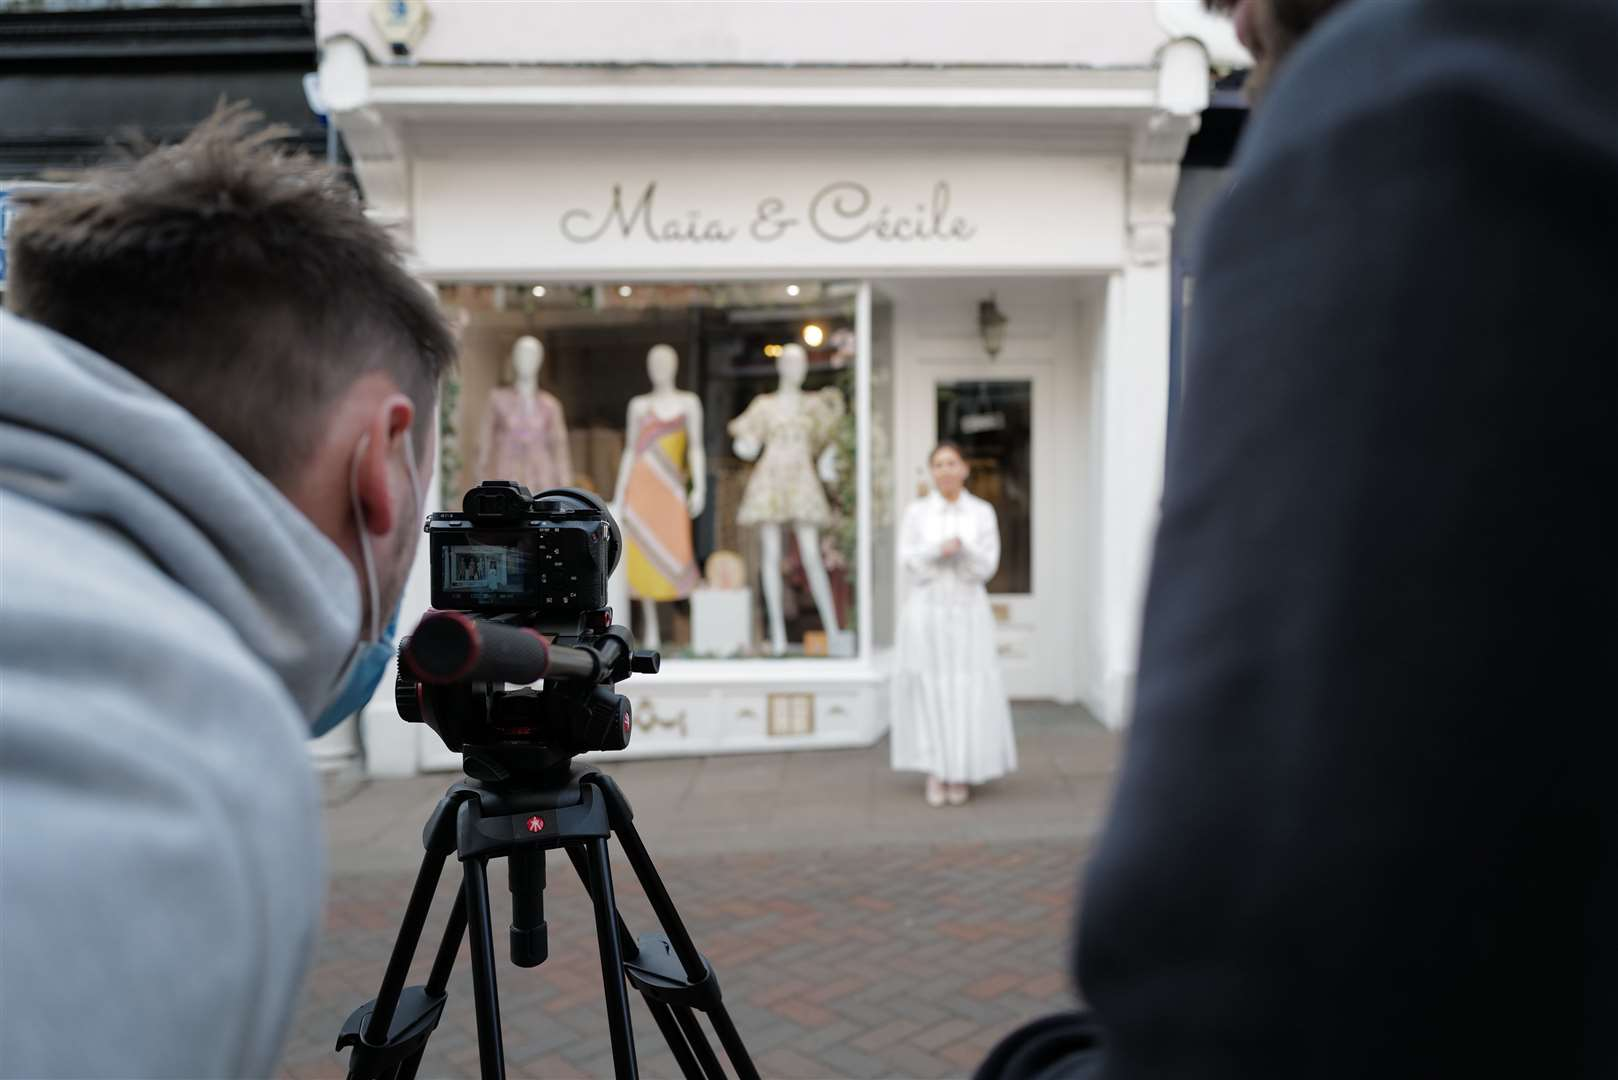 Boutiques including Maia & Cecile feature in the #BuryBouncingBack film. Picture: Allegro Creative Agency/Our Bury St Edmunds